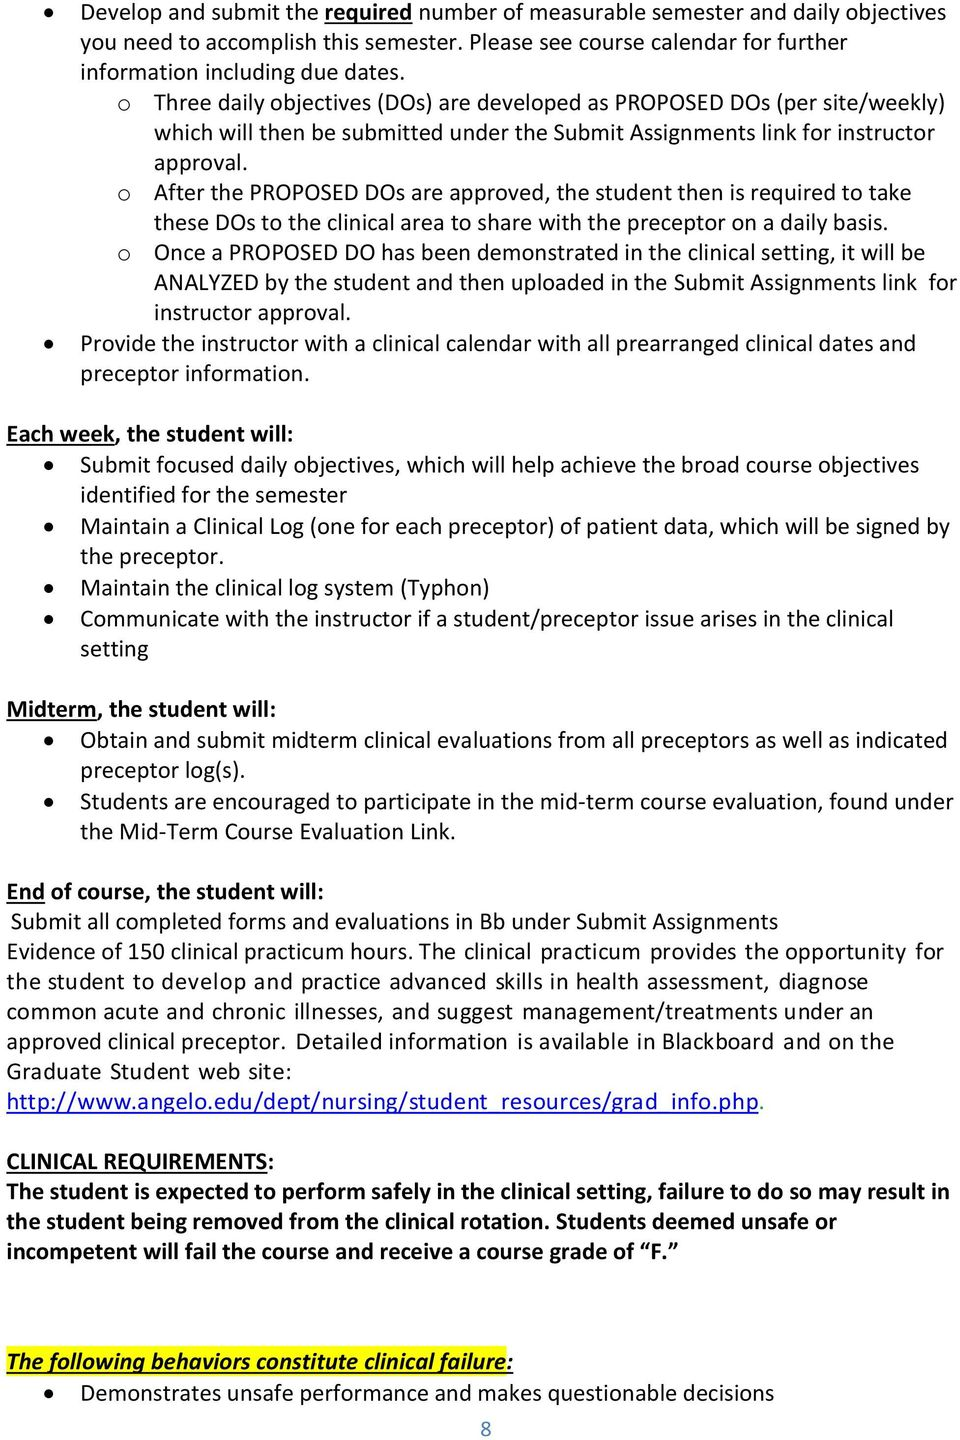 o After the PROPOSED DOs are approved, the student then is required to take these DOs to the clinical area to share with the preceptor on a daily basis.